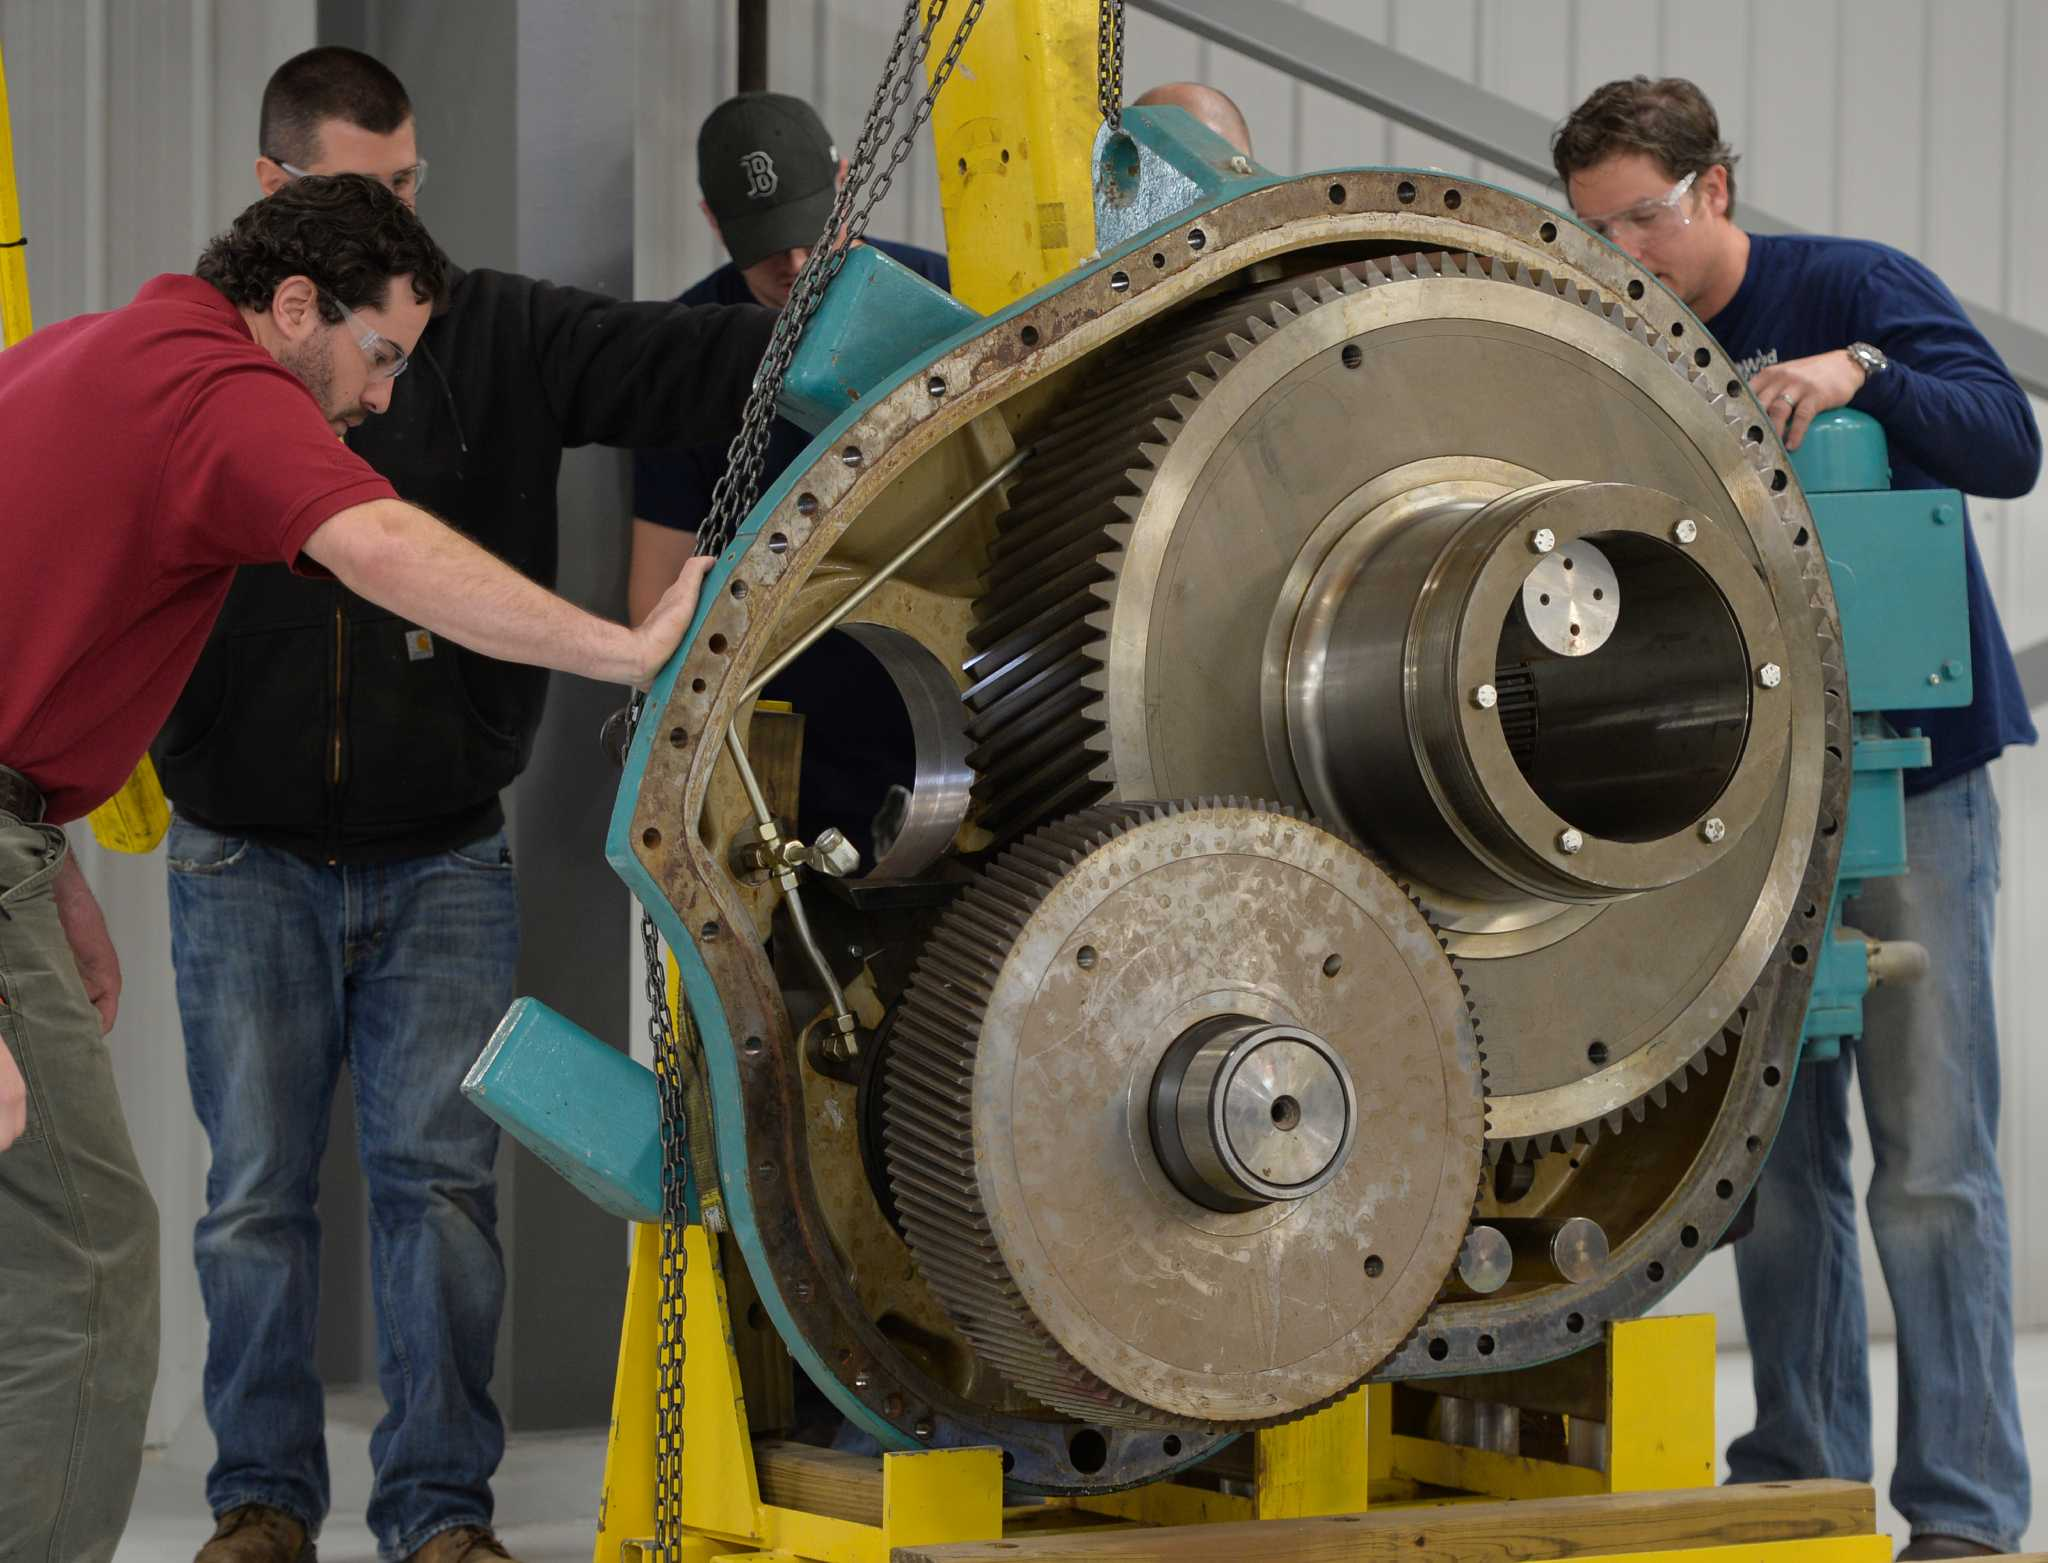 GE wind turbine lab aims for better way to do job Times Union